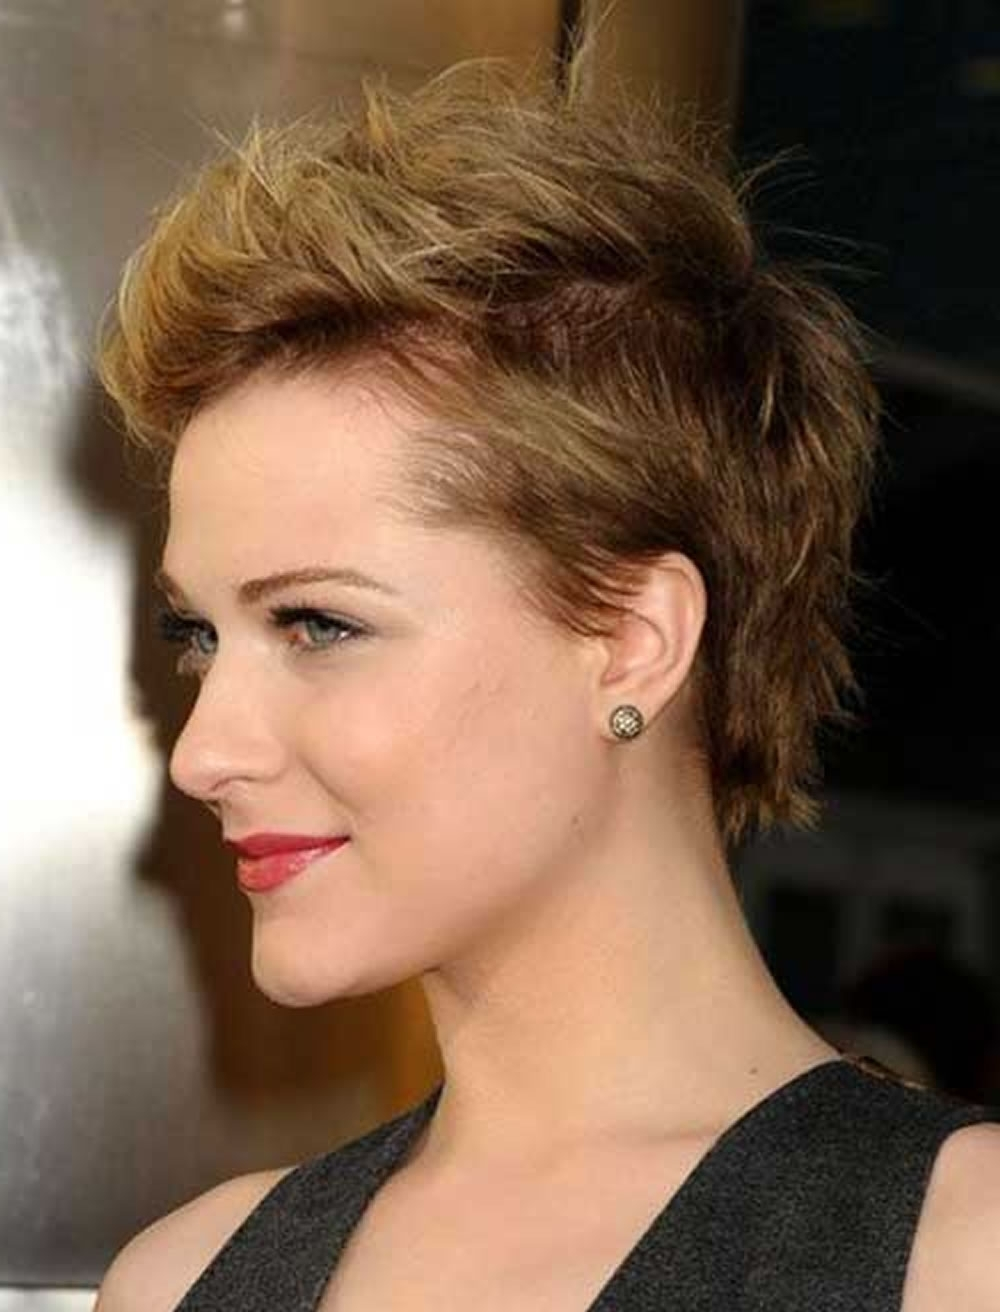 25 Unique Pixie Haircuts For Girls 2018 2019 – Latest Pixie Cut Ideas In Newest Girls Pixie Hairstyles (View 10 of 15)